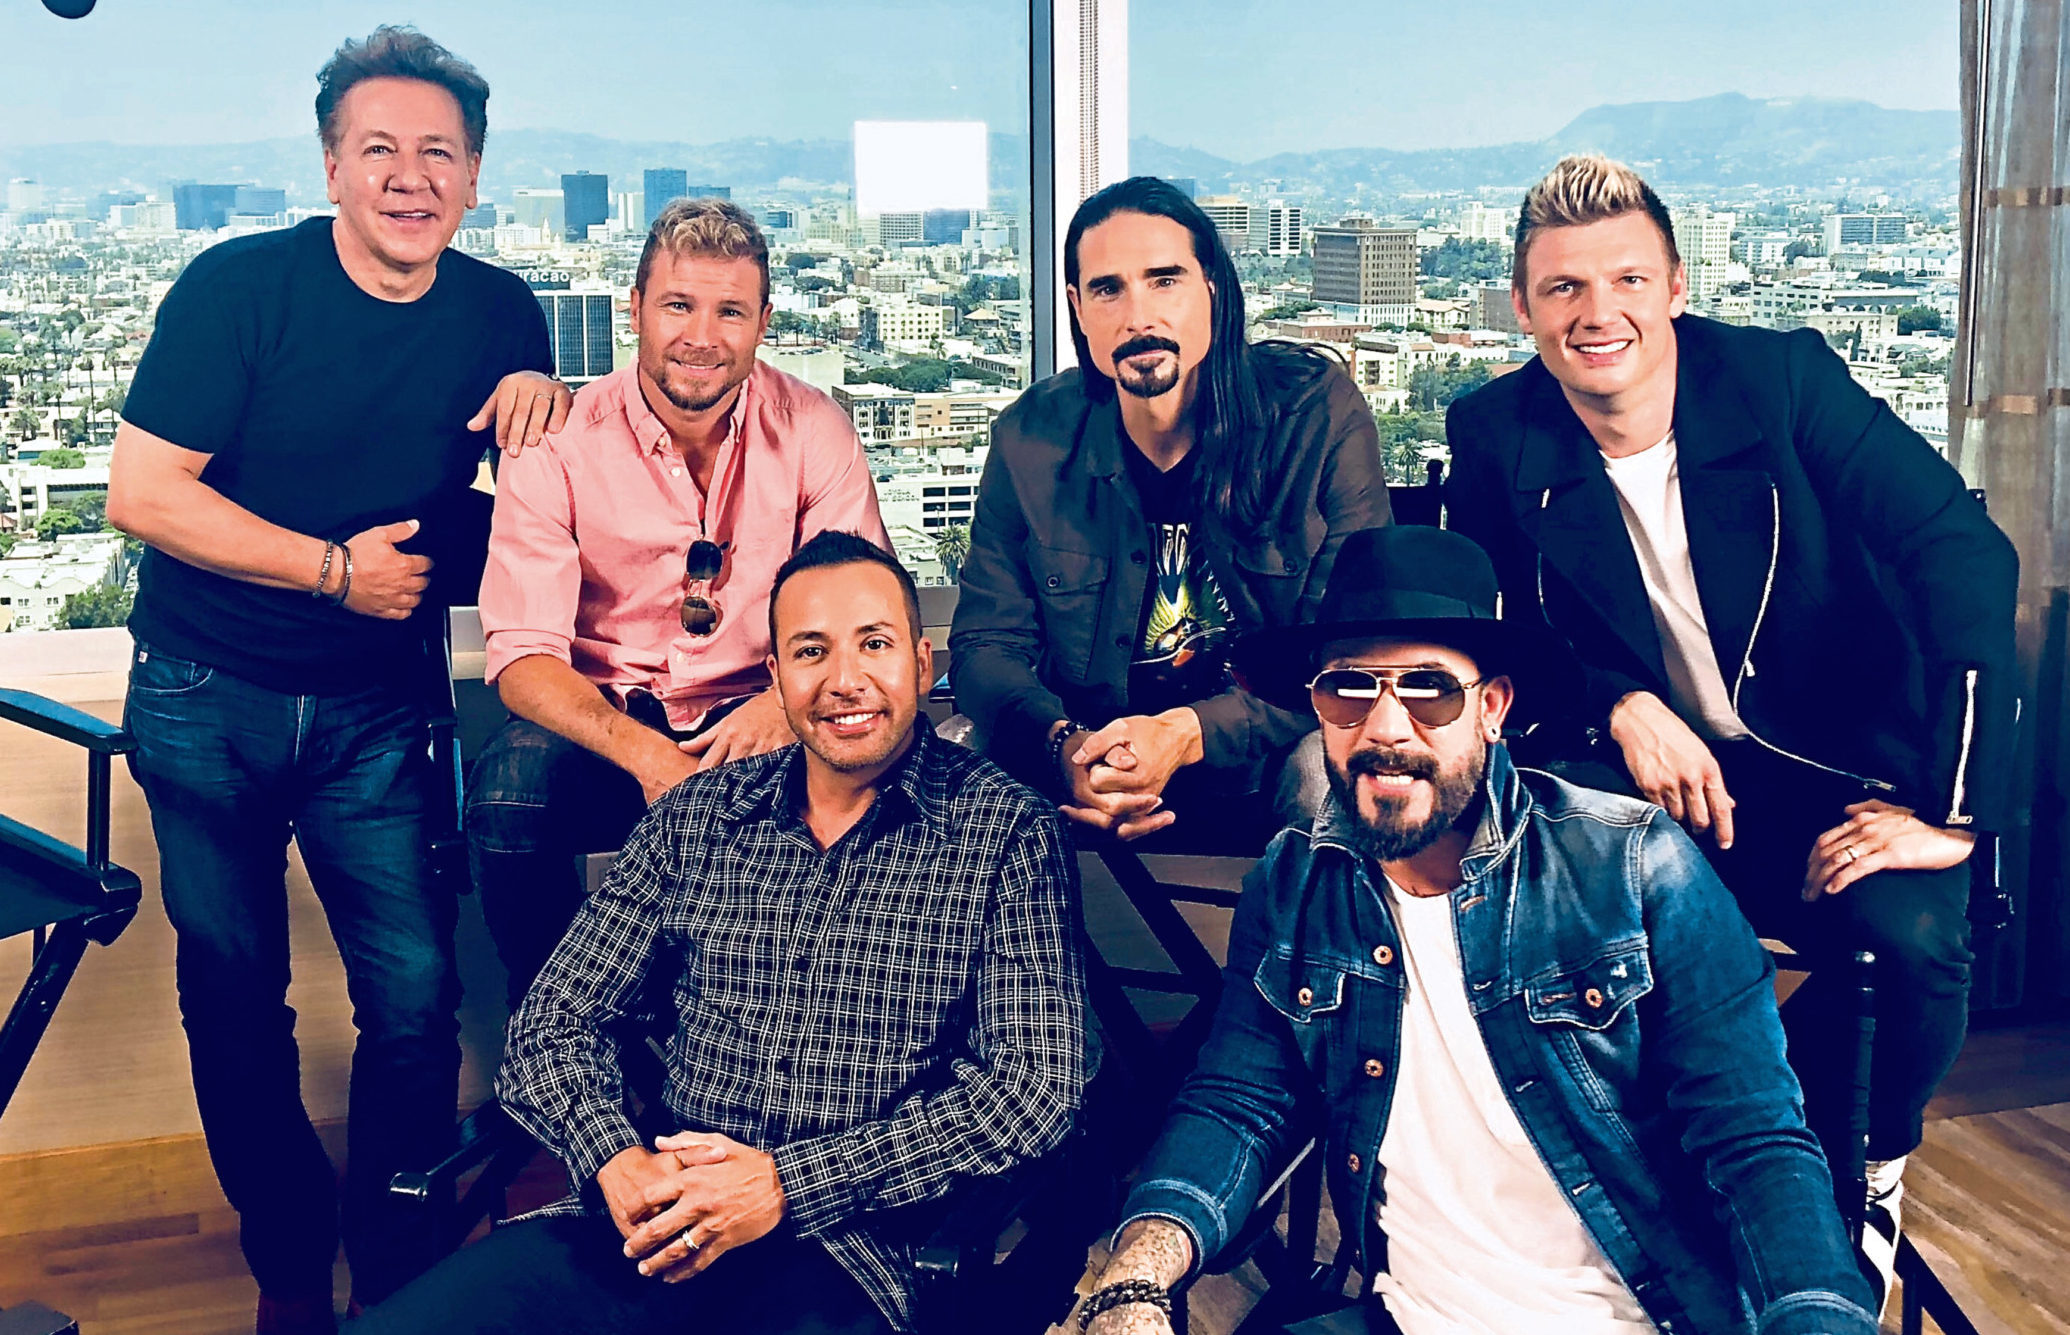 Ross King with the Backstreet Boys